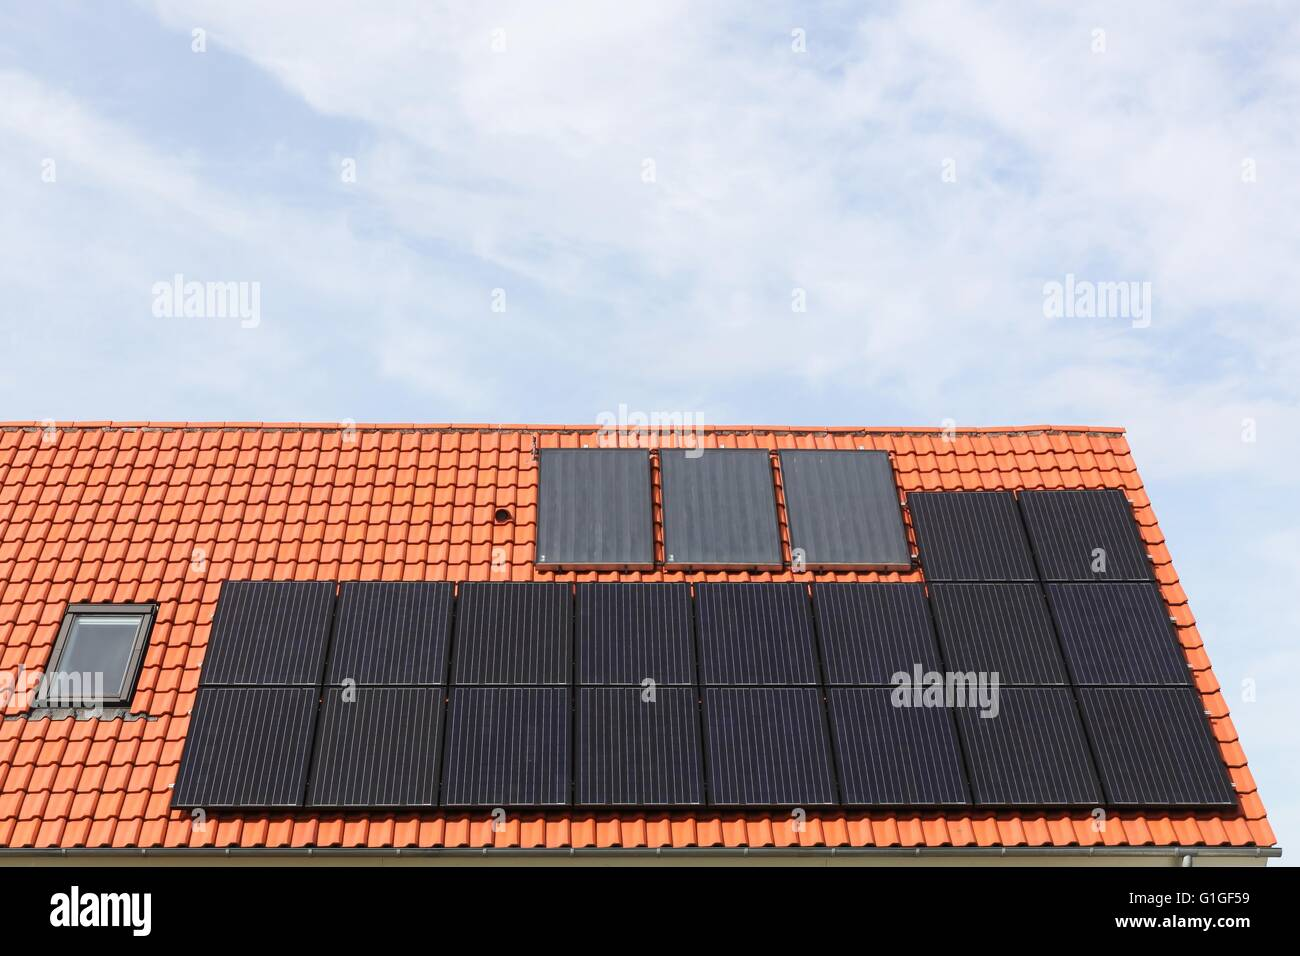 House with solar panels on the roof - Stock Image